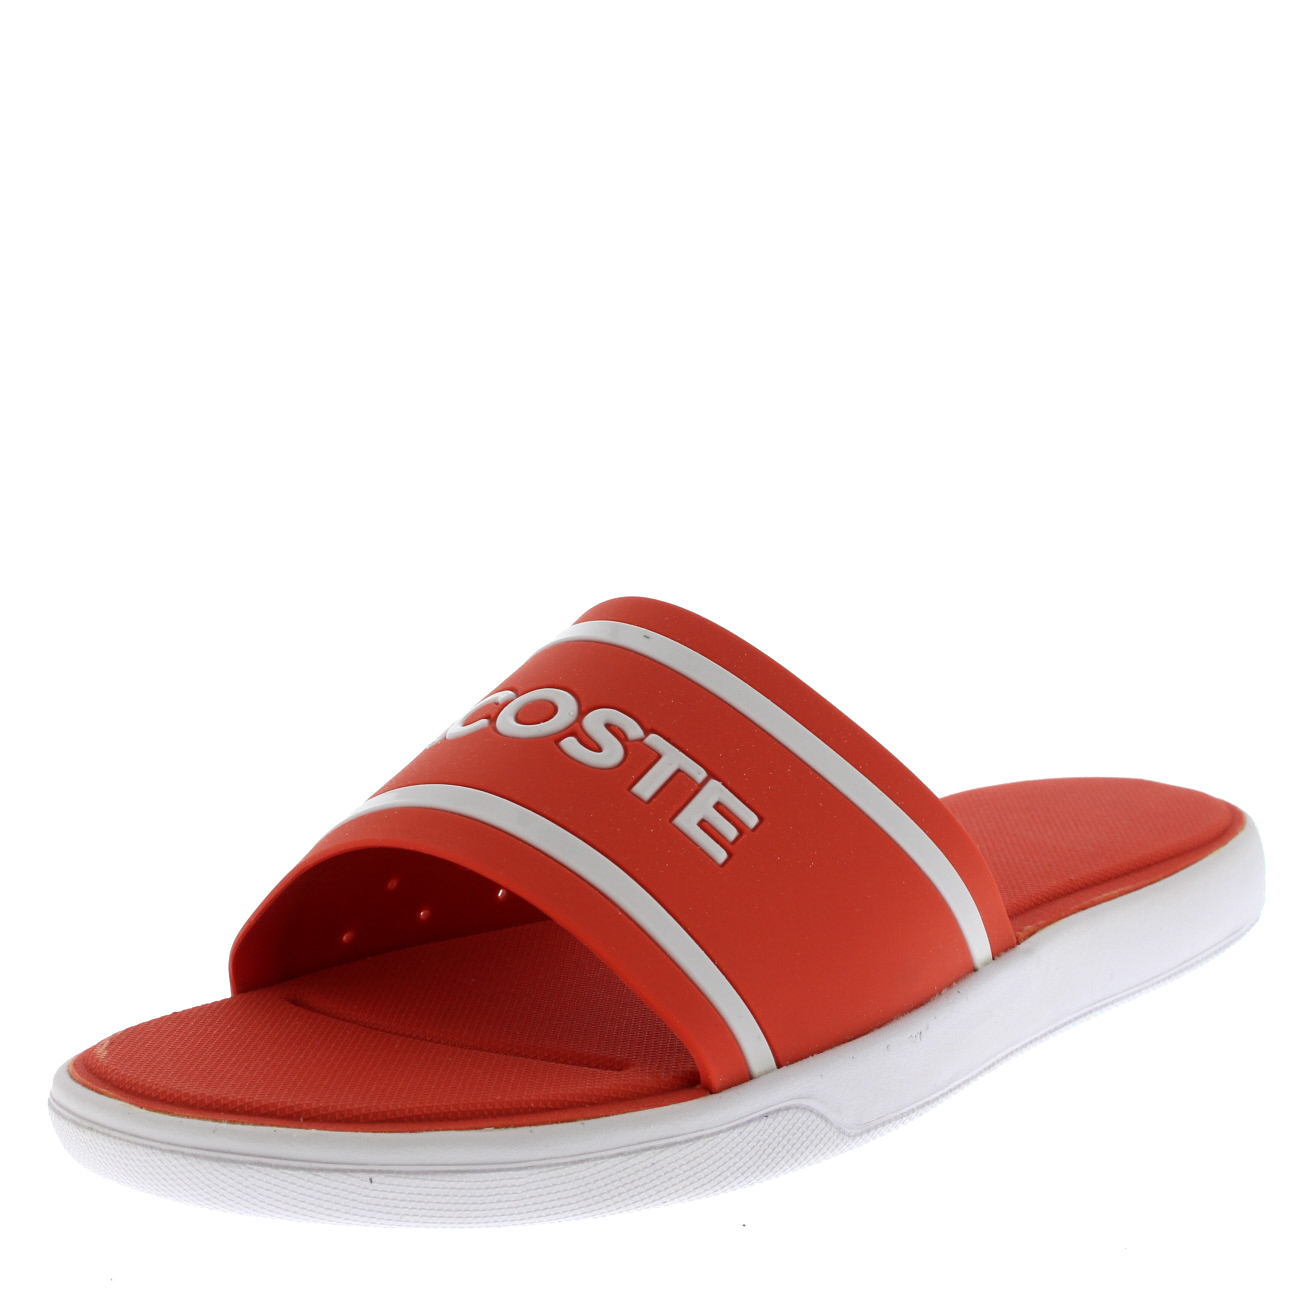 a7005156f6e37e Lacoste L30 Slide 218 1 CAW Pool Beach Sandals in Wide Range Colours ...